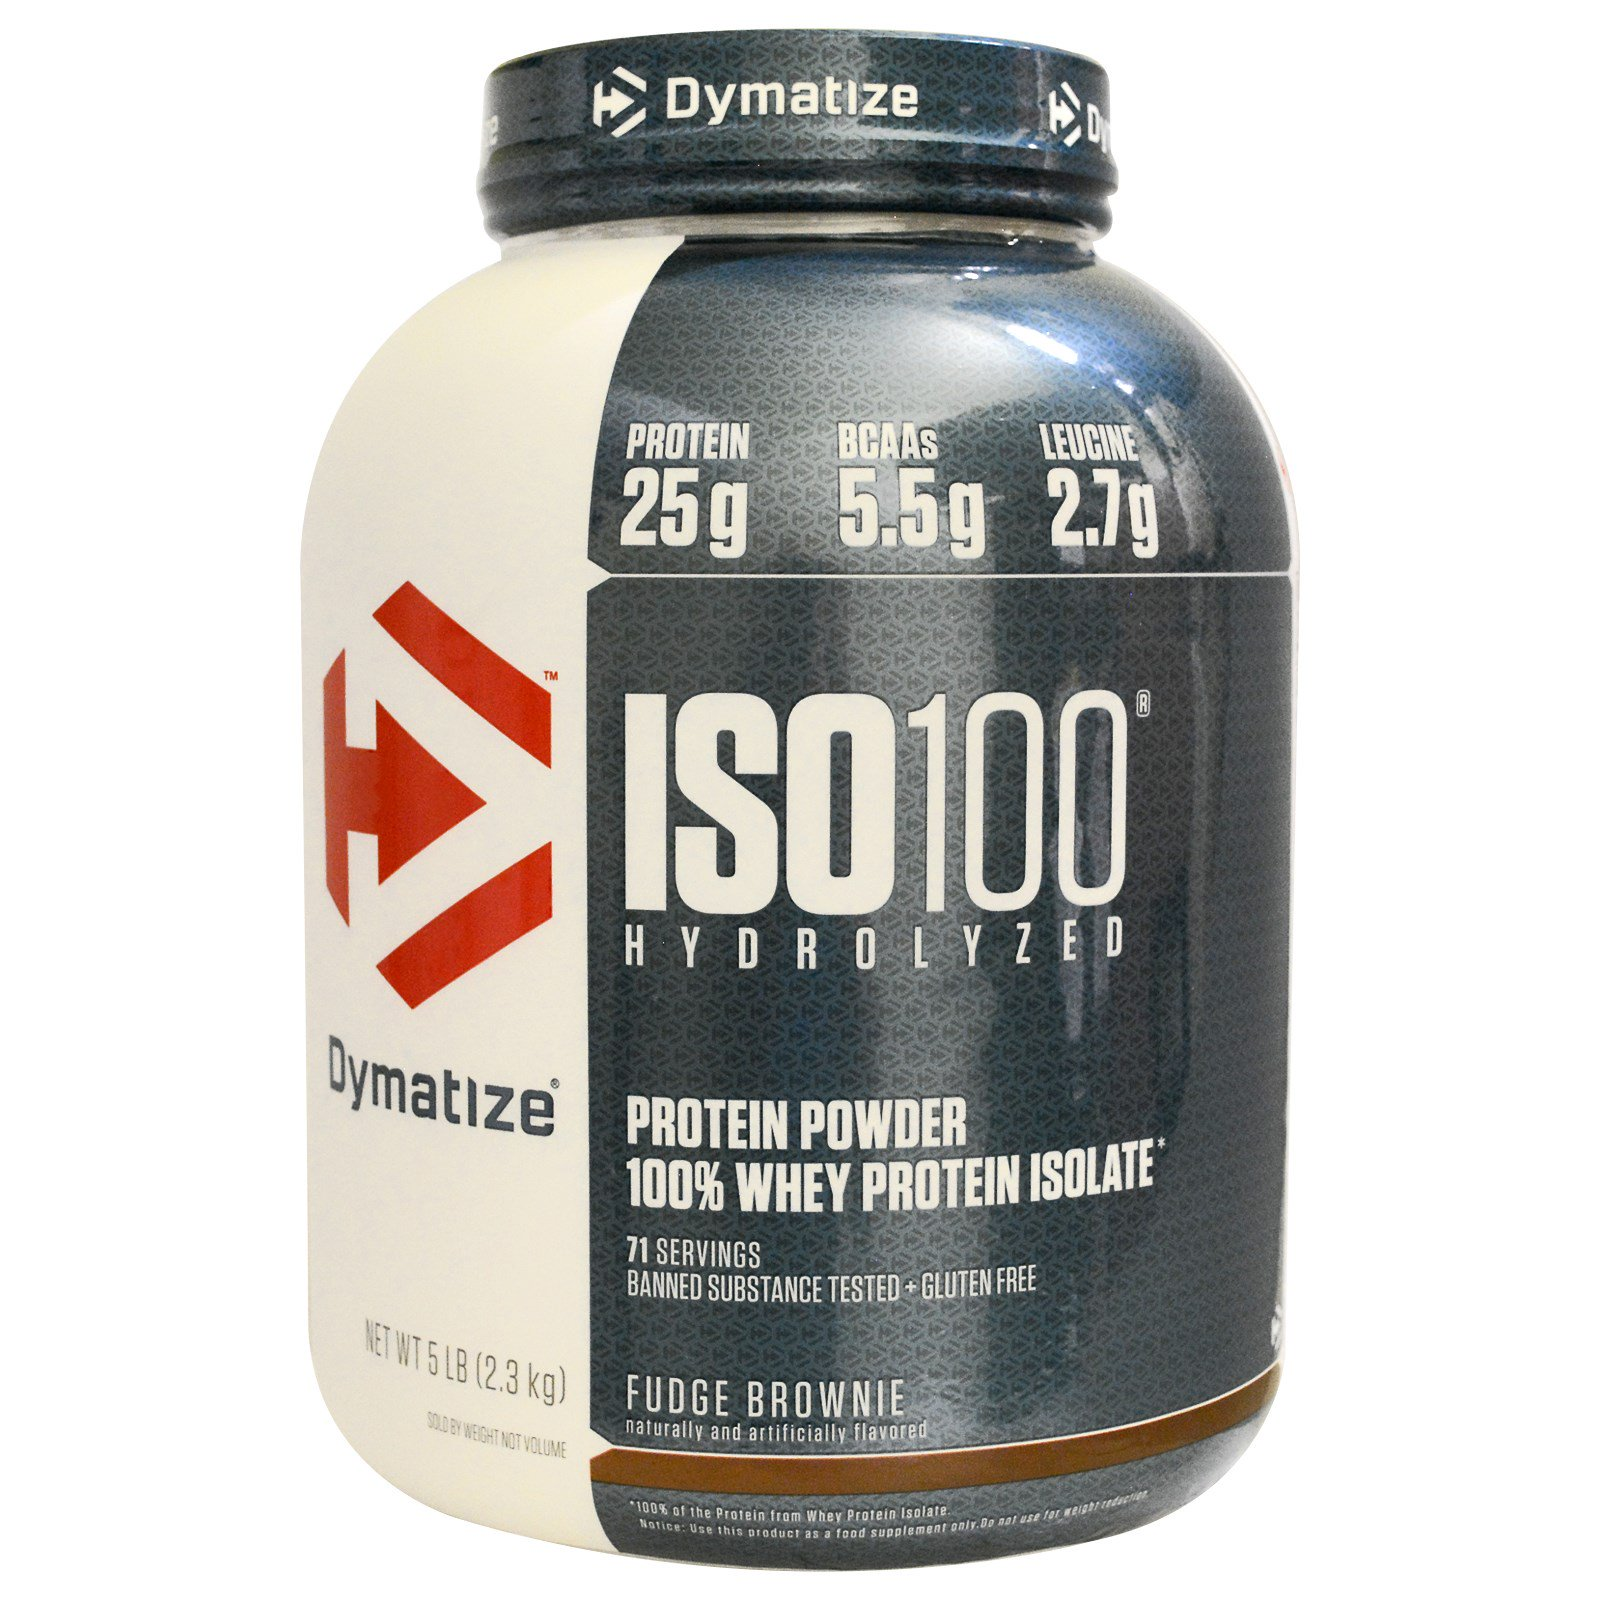 Dymatize Nutrition Iso 100 Hydrolyzed 100 Whey Protein Isolate